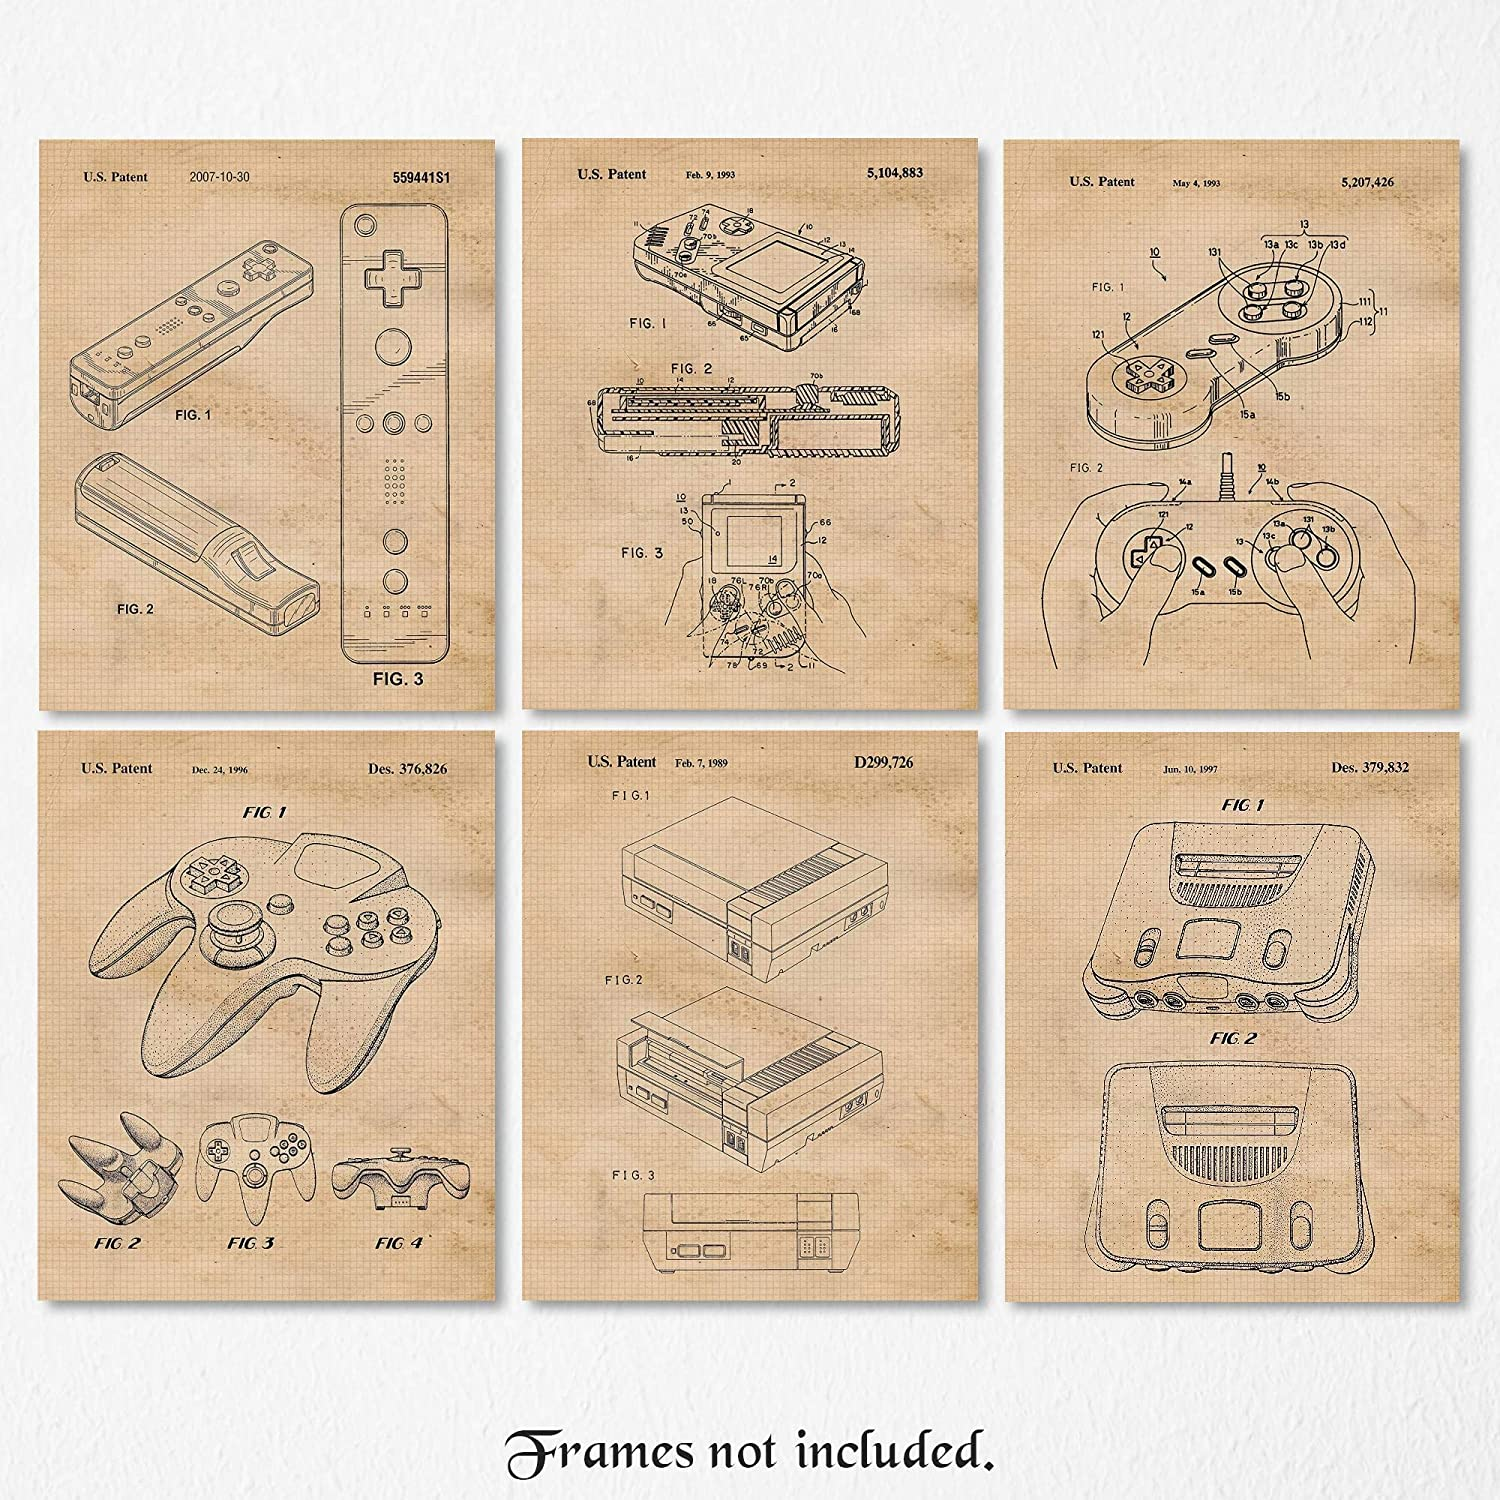 Vintage Nintendo Patent Poster Prints, Set of 6 (8x10) Unframed Photos, Wall Art Decor Gifts Under 25 for Home, Office, Garage, Man Cave, Shop, College Student, Teacher, Comic-Con & Movies Fan